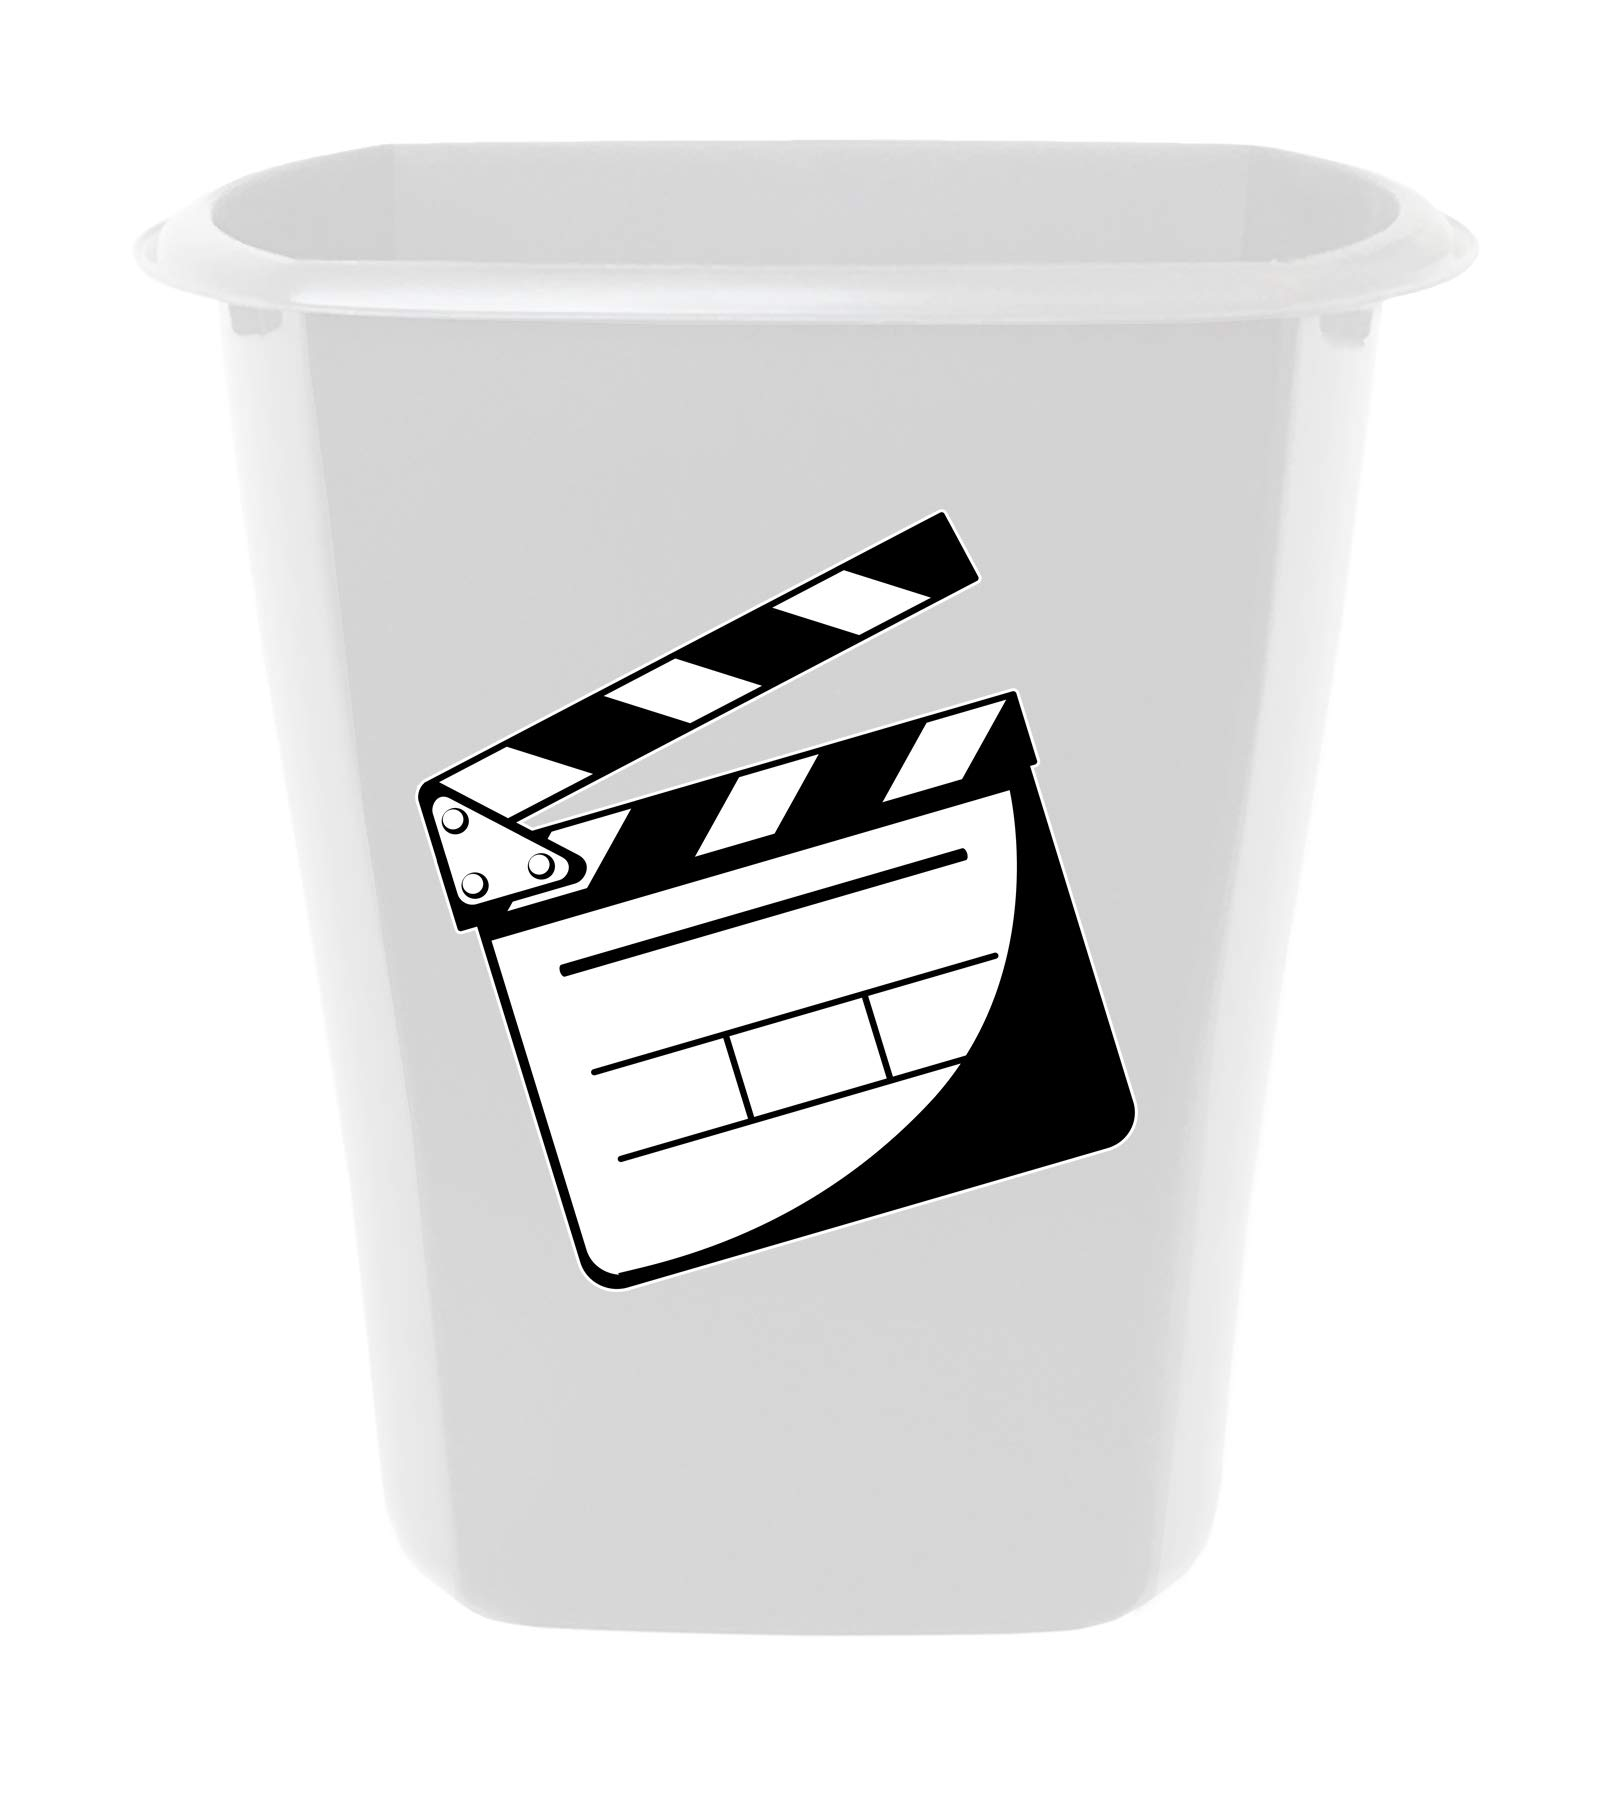 The Furniture Cove 3 Gallon White Plastic Wastebasket Trash Can for the Bathroom or Game Room Featuring the Choice of Your Favorite Novelty Theme Logo Decal (Movie Clapper)